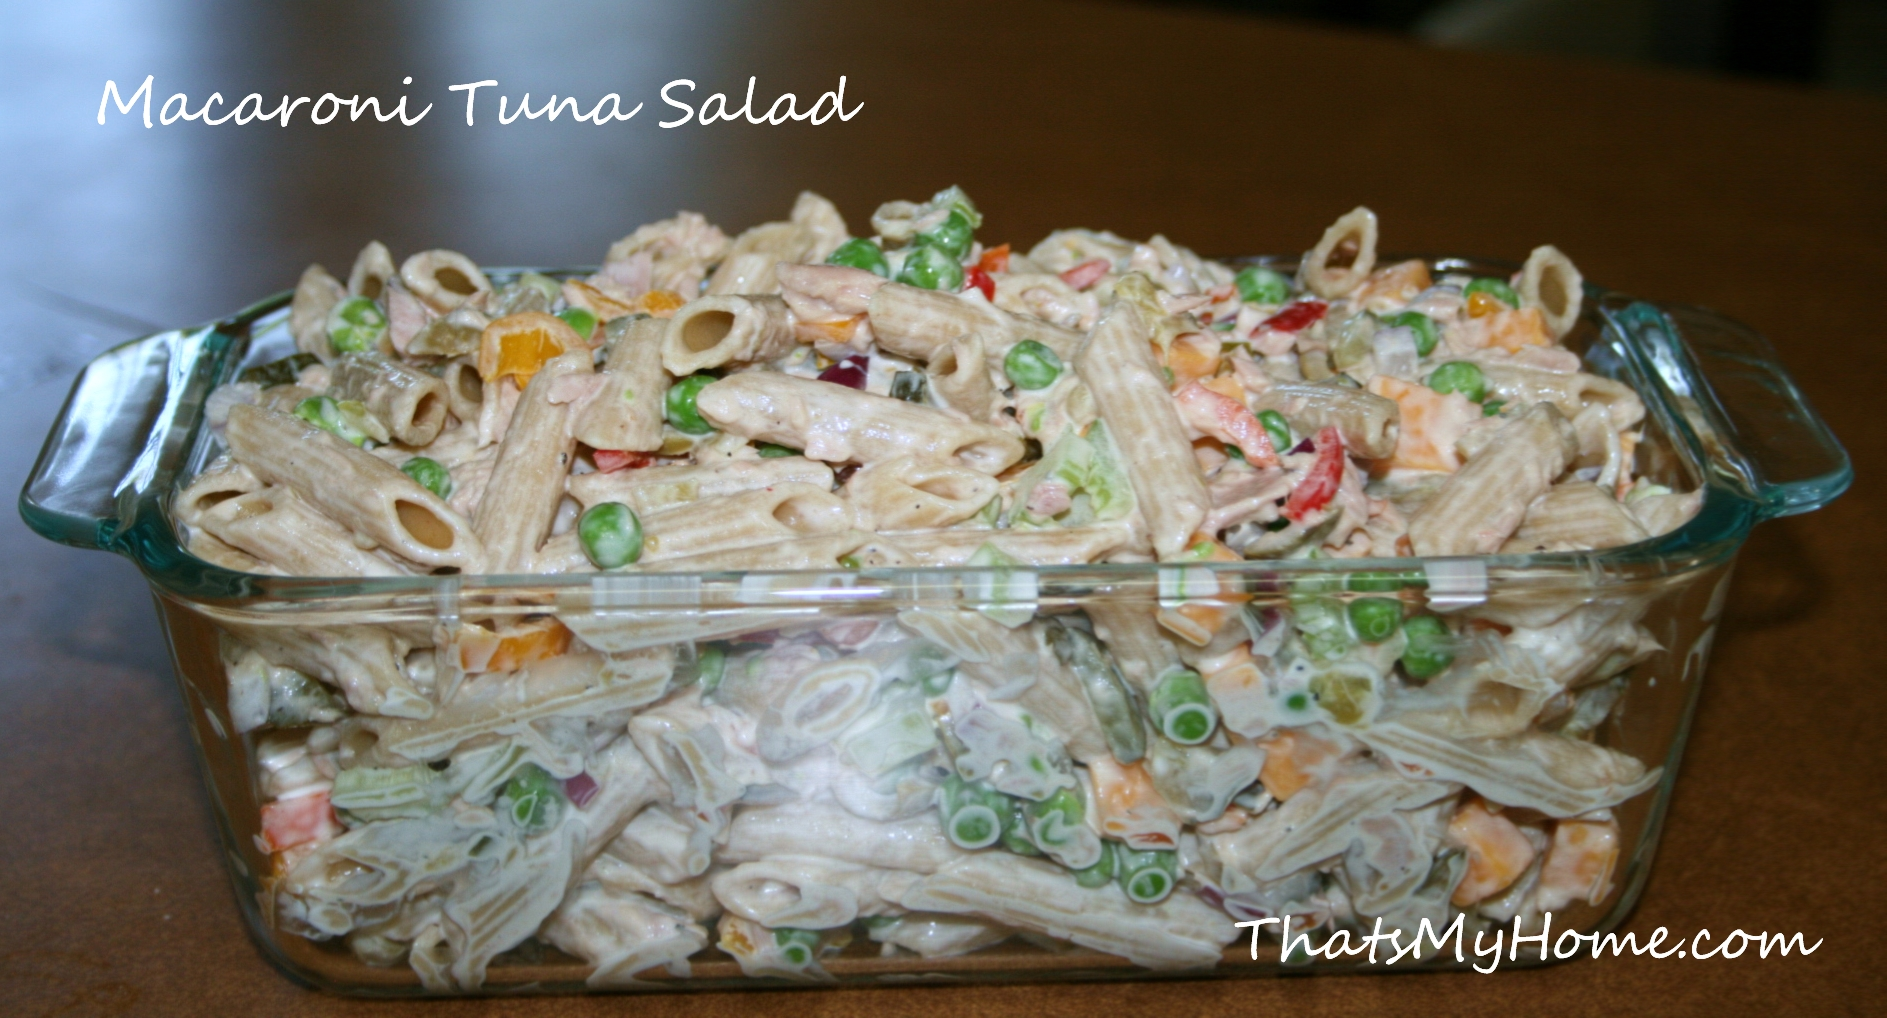 Hawaiian Tuna Macaroni Salad Images & Pictures - Becuo